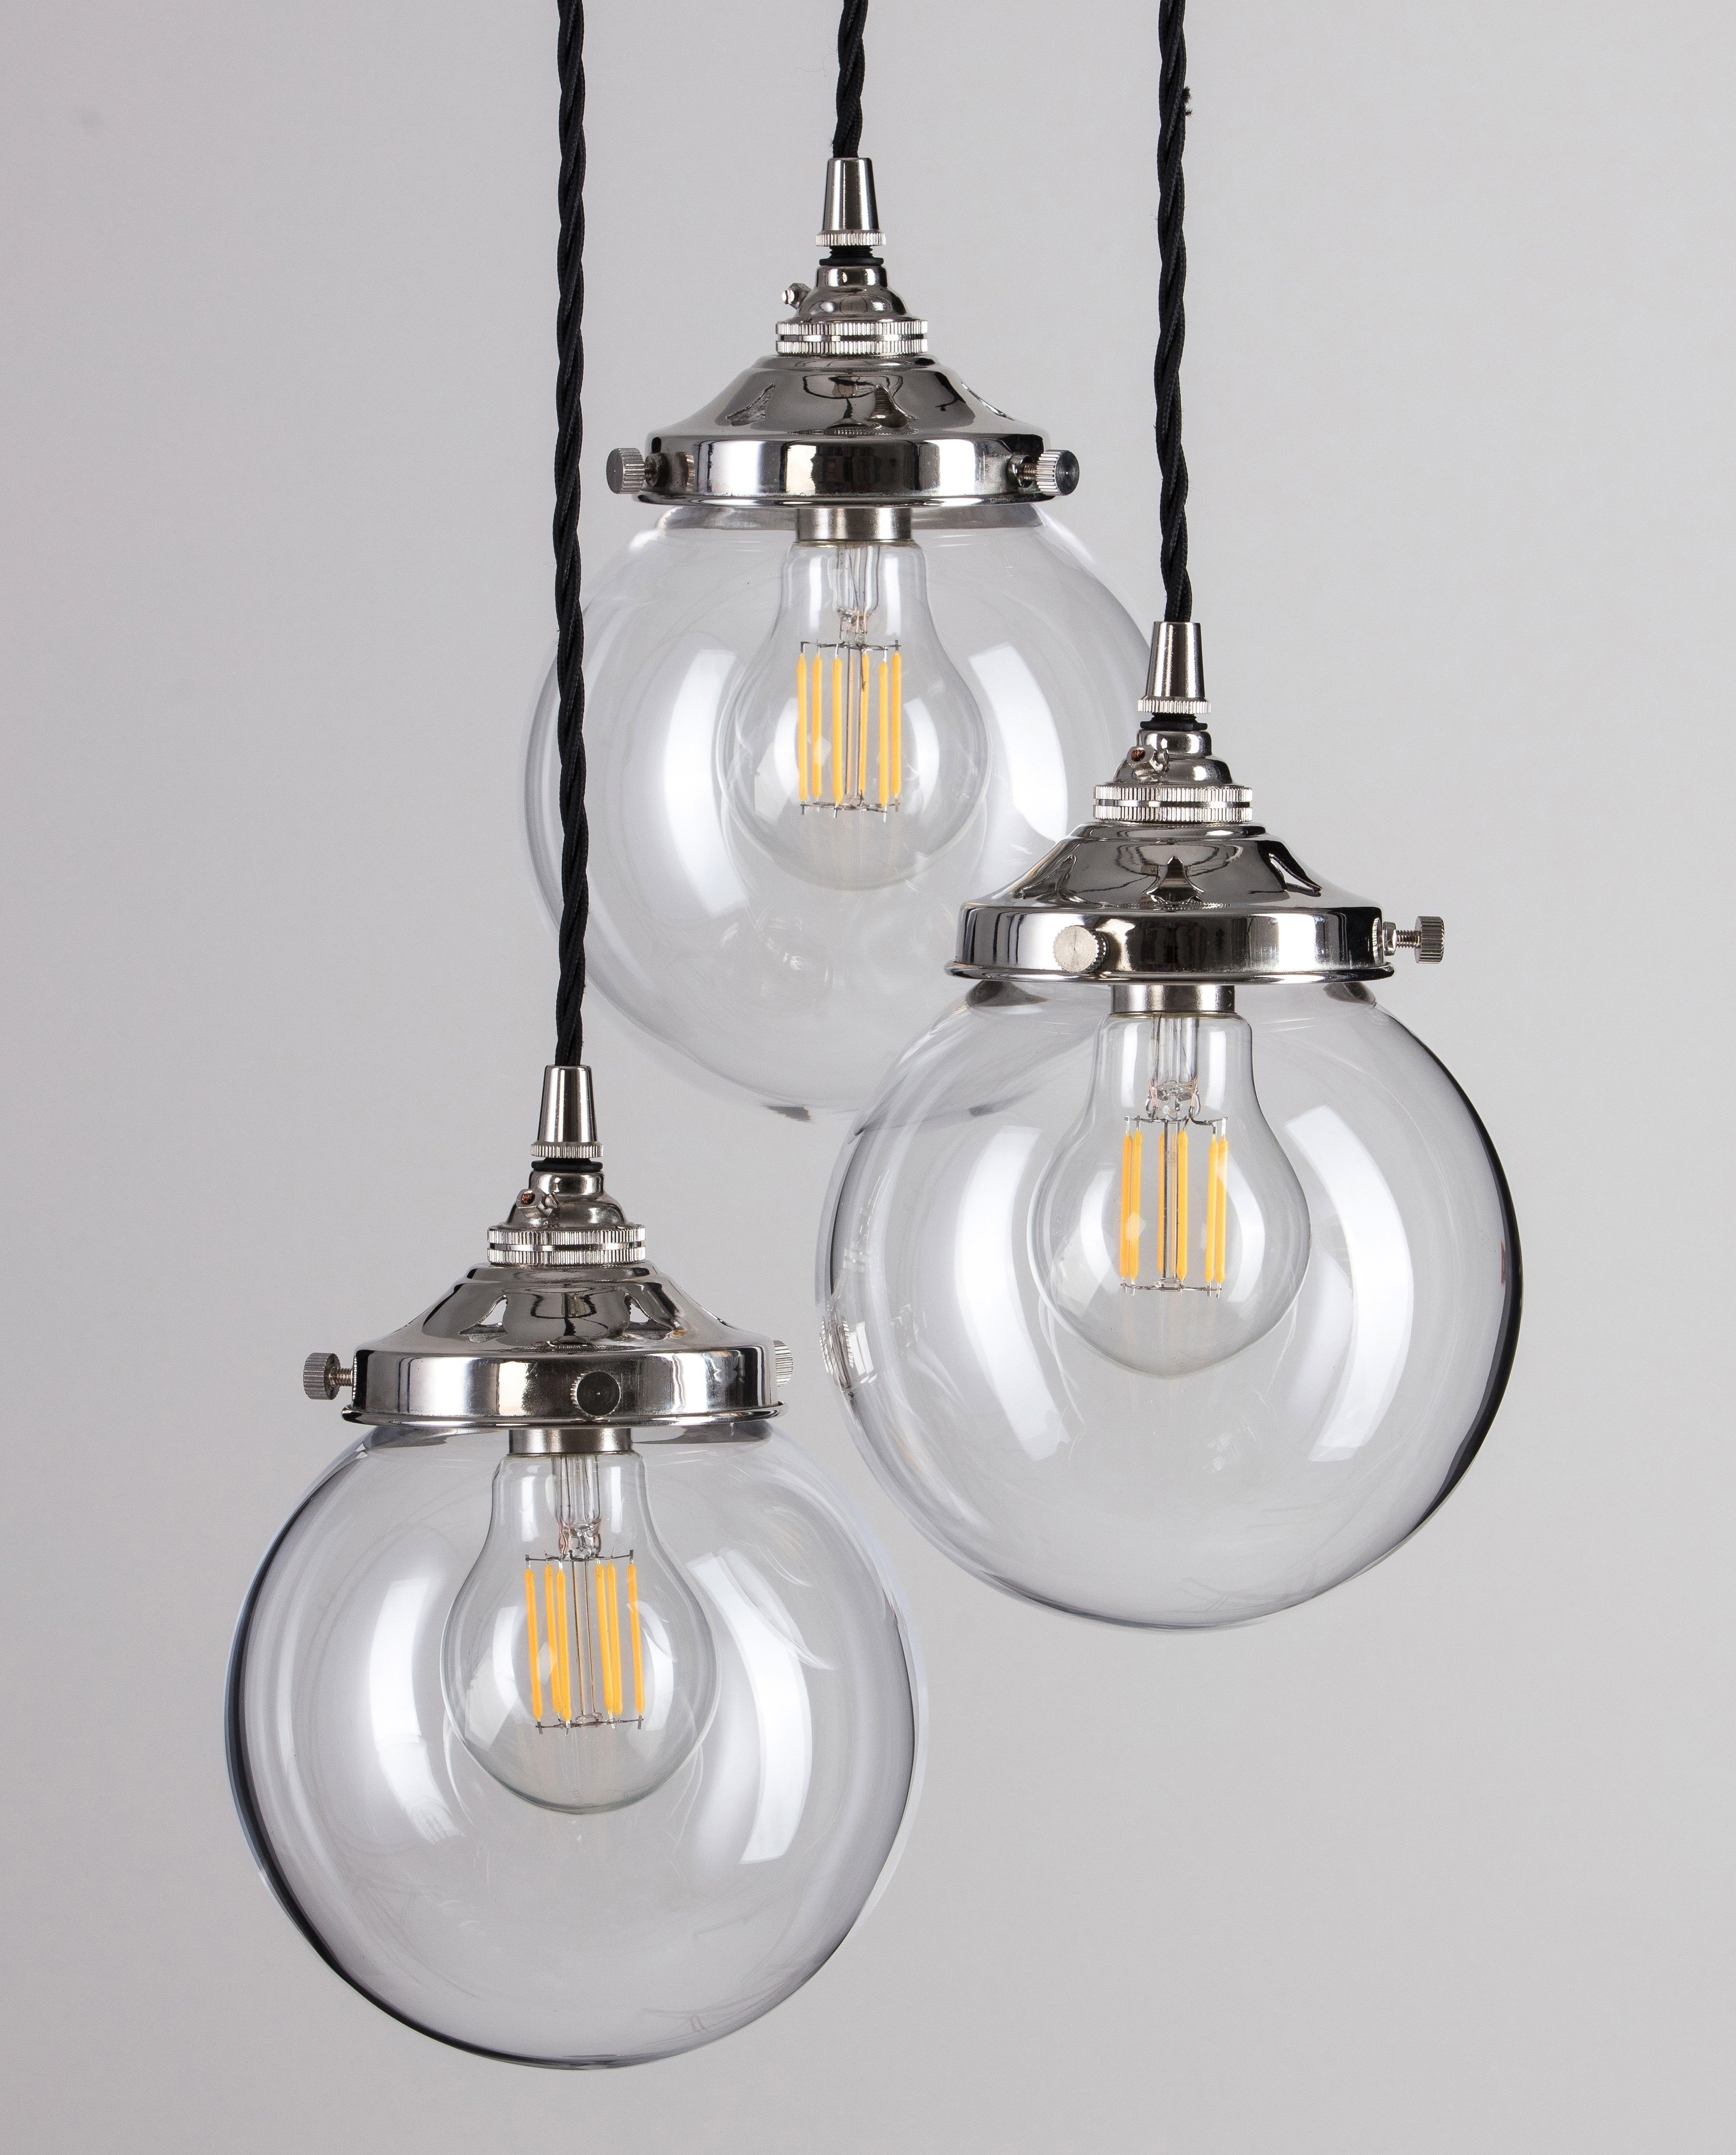 Glass Globe Cluster Pendant Light - Antique Silver